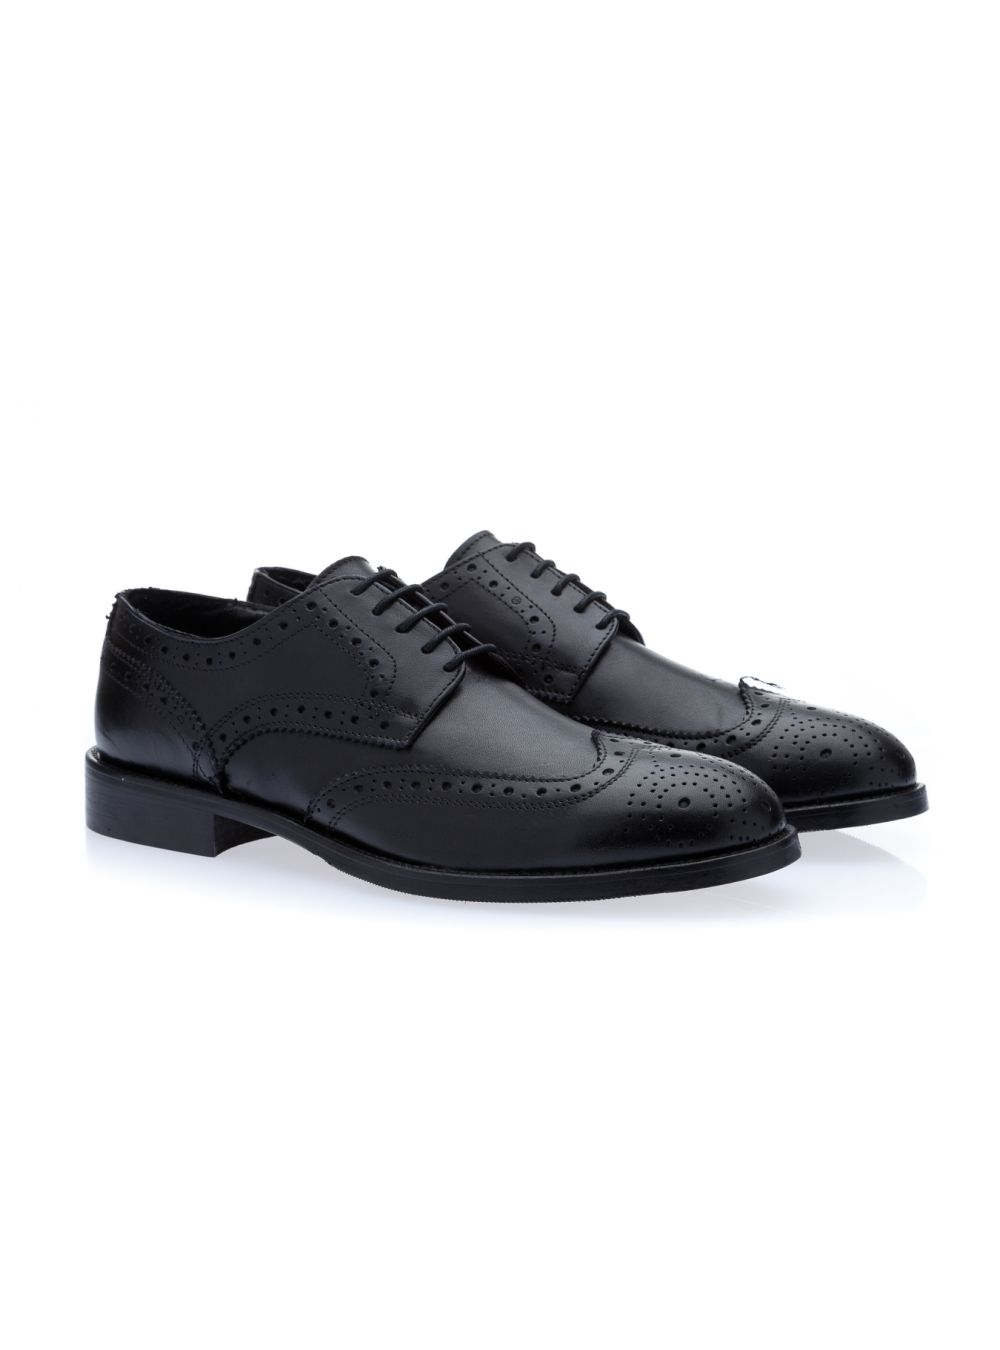 Elegant Black Shoes